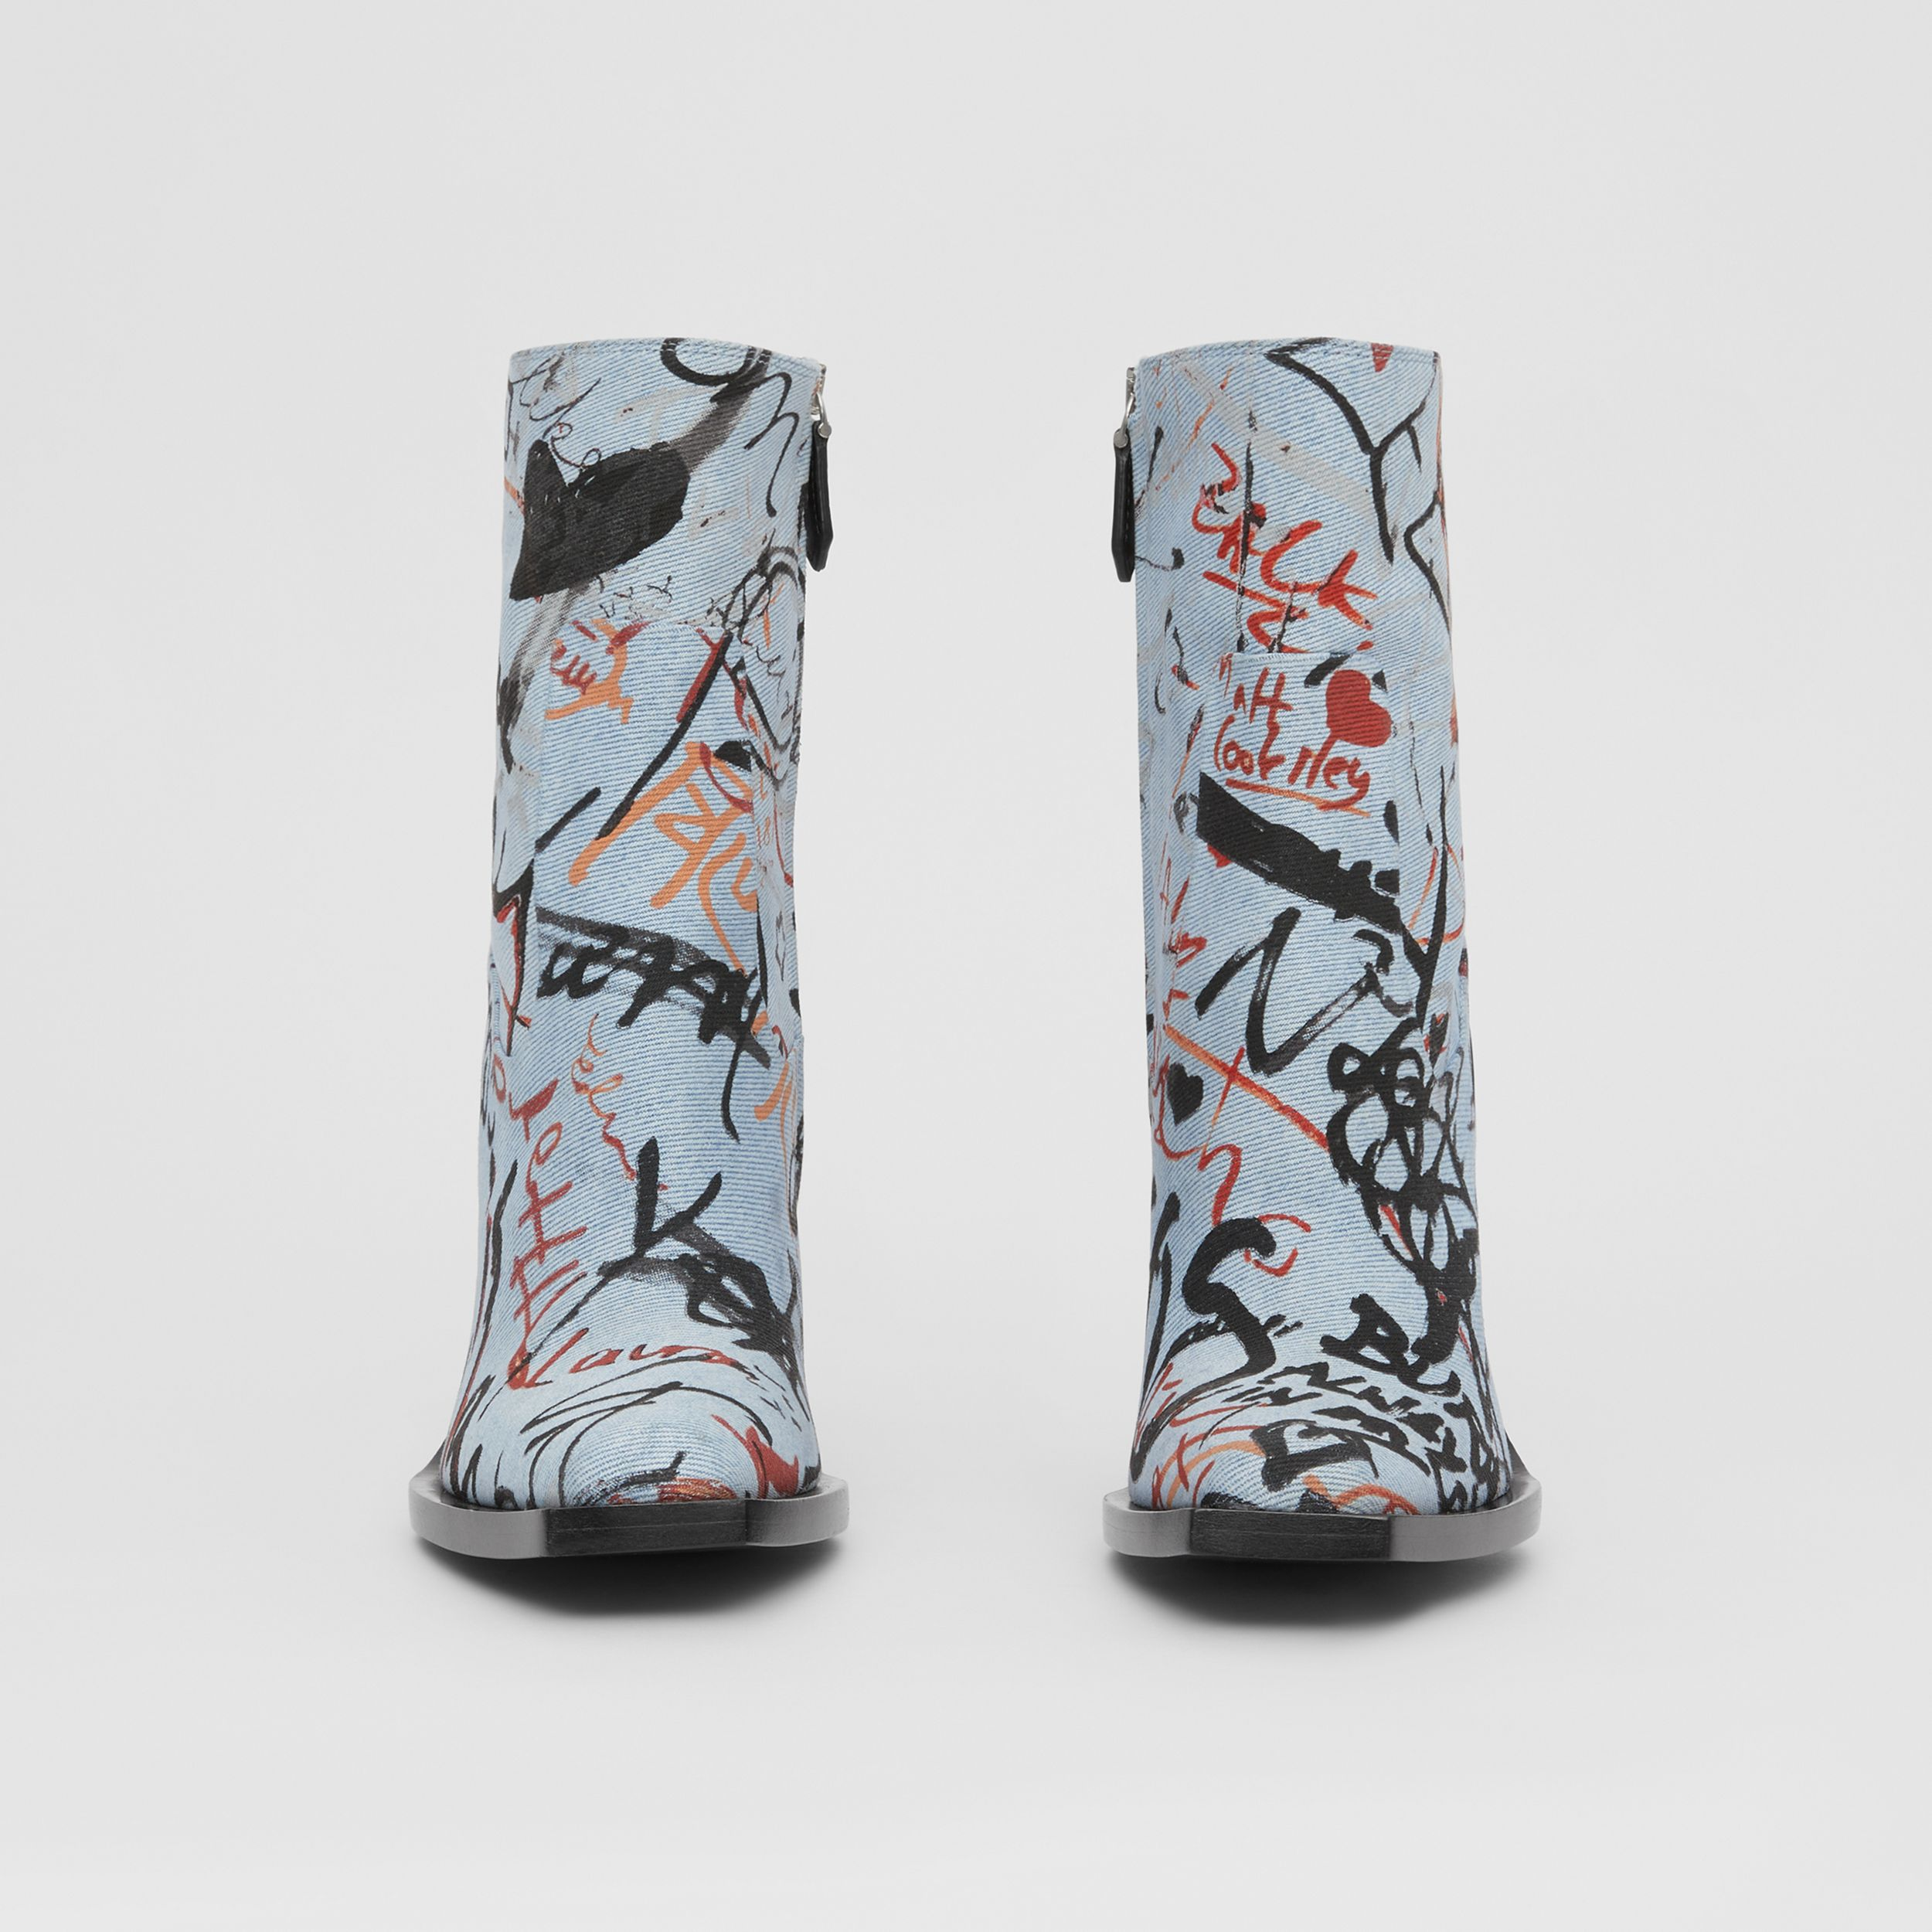 Graffiti Print Denim Block-heel Ankle Boots in Multicolour - Women | Burberry - 3